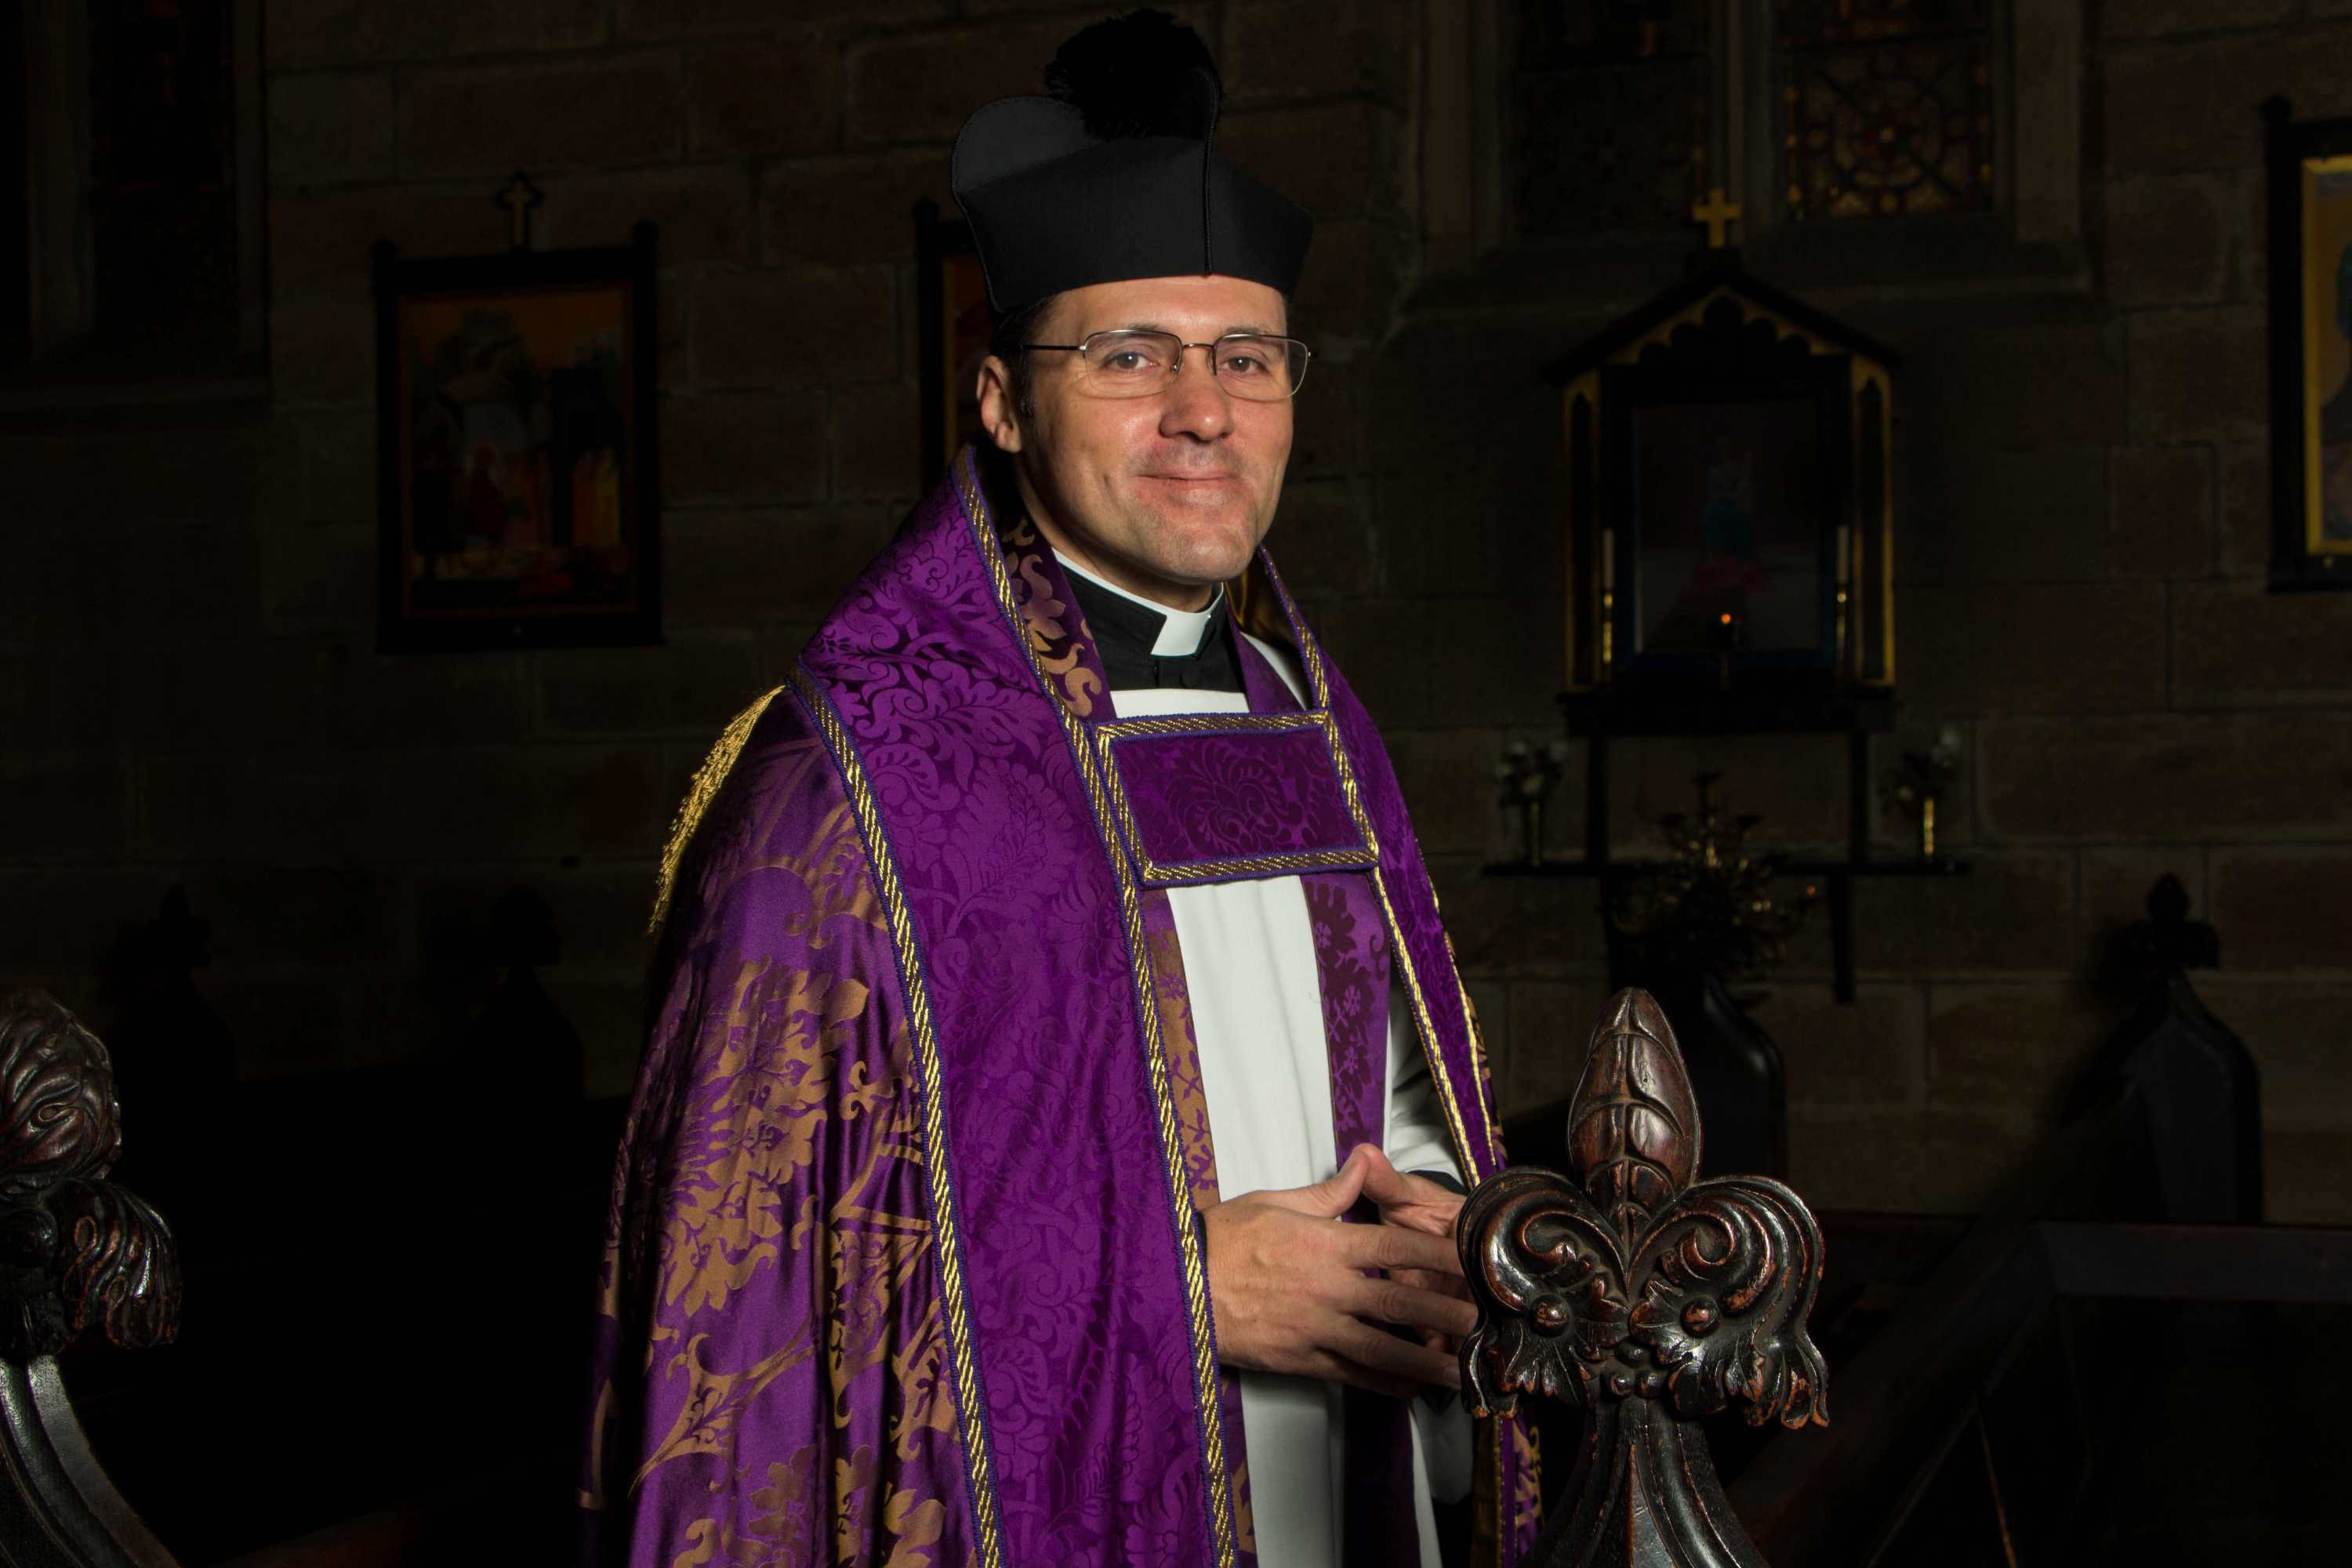 Mitre Hat Bishop Pope Priest Father Holy Fancy Dress Accessory